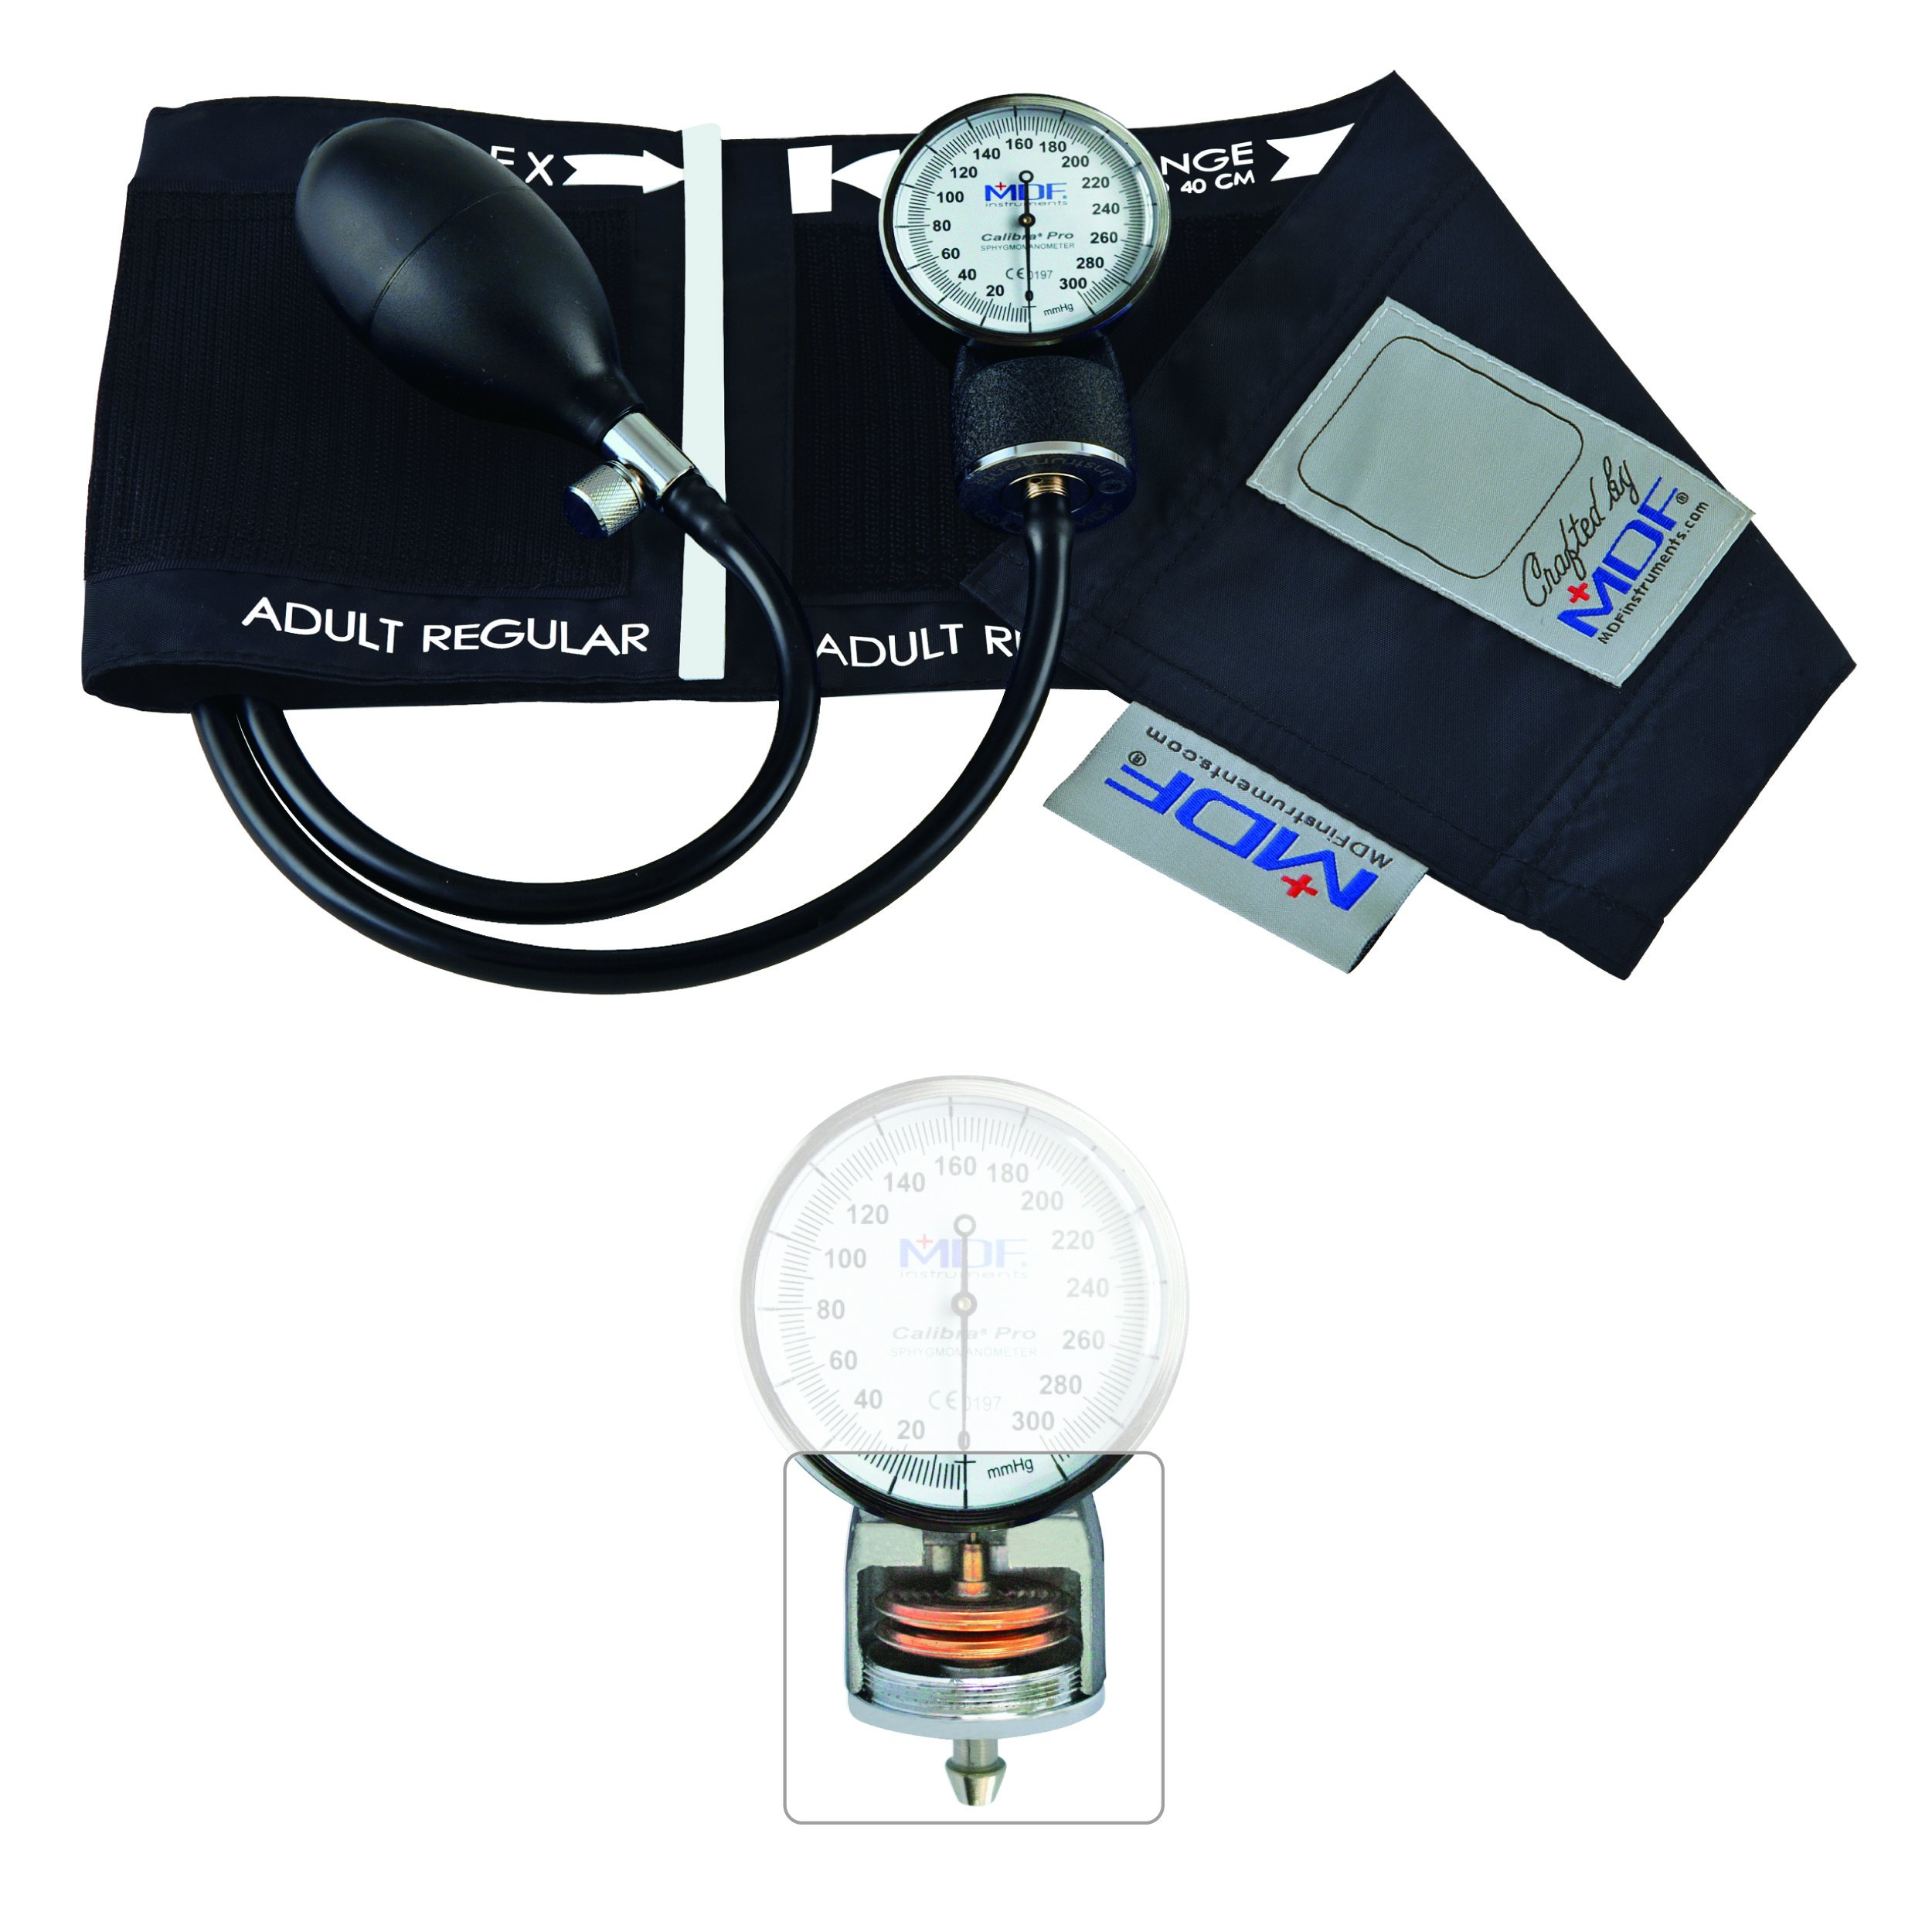 MDF Calibra Pro Aneroid Sphygmomanometer - Professional Blood Pressure Monitor with Adult Sized Cuff Included - Full & Free-Parts-For-Life - Black (MDF808B-11) by MDF Instruments (Image #1)